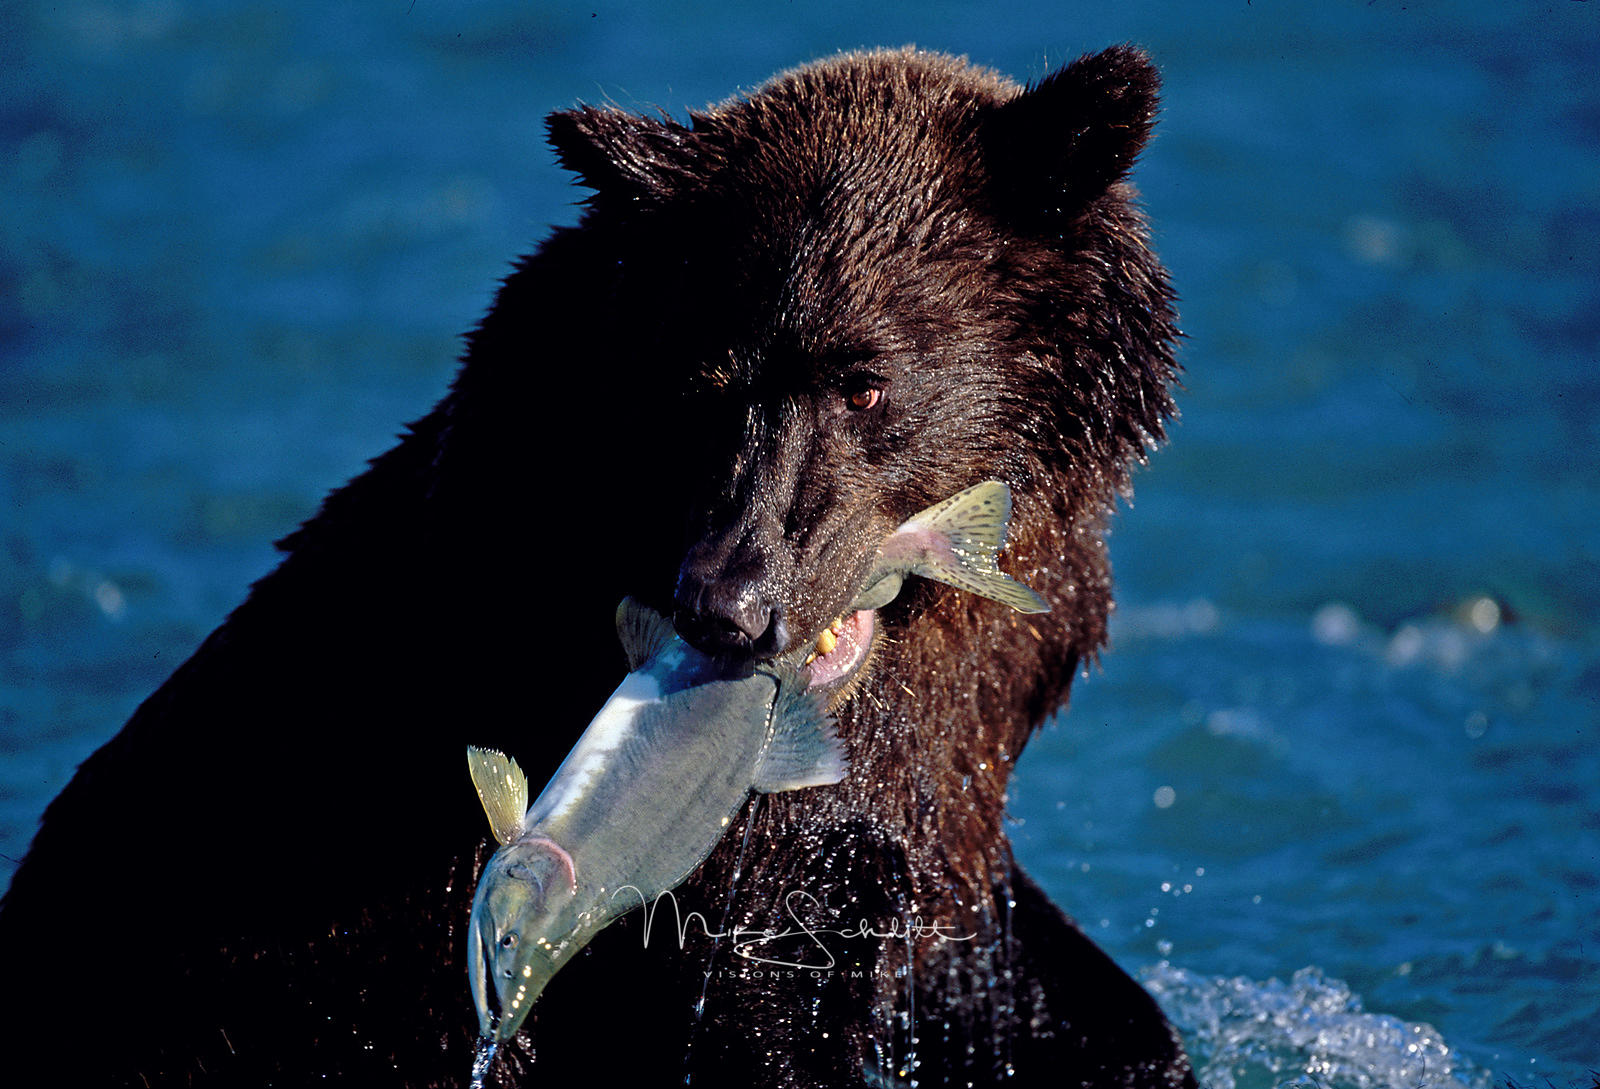 B_Alaska_Bear_fish_in_mouth_close_up_crop